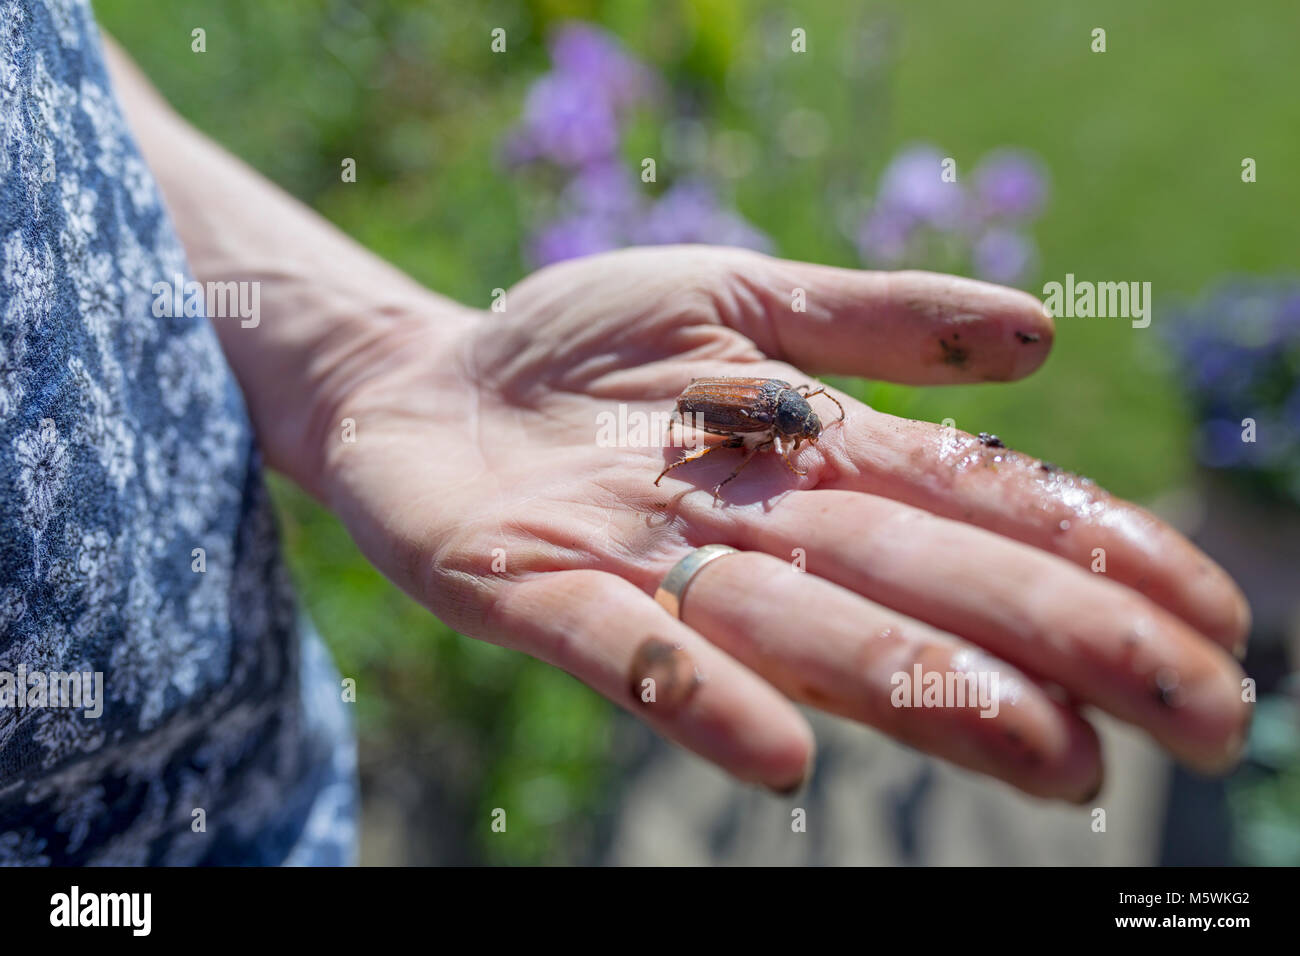 A May bug in the palm of a woman's hand. - Stock Image